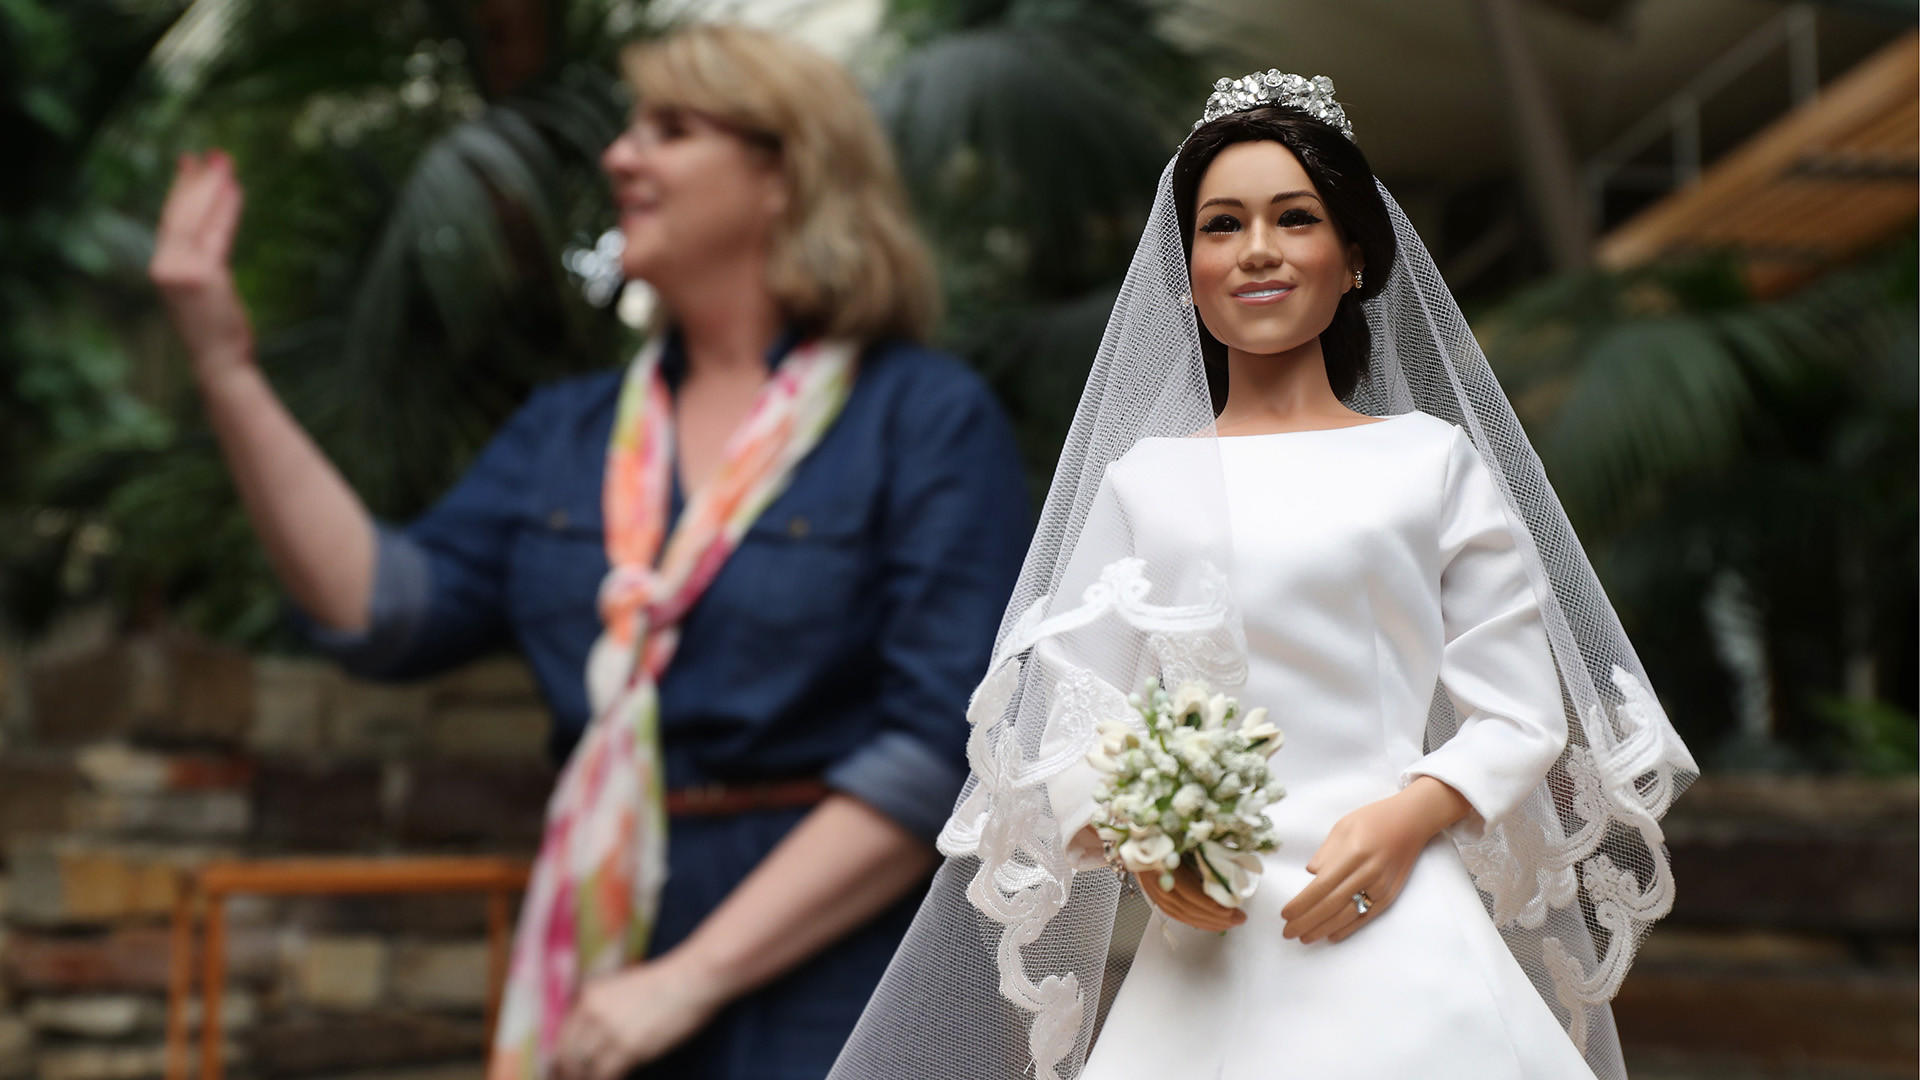 Niles Doll Company Replicates Meghan Markle And Prince